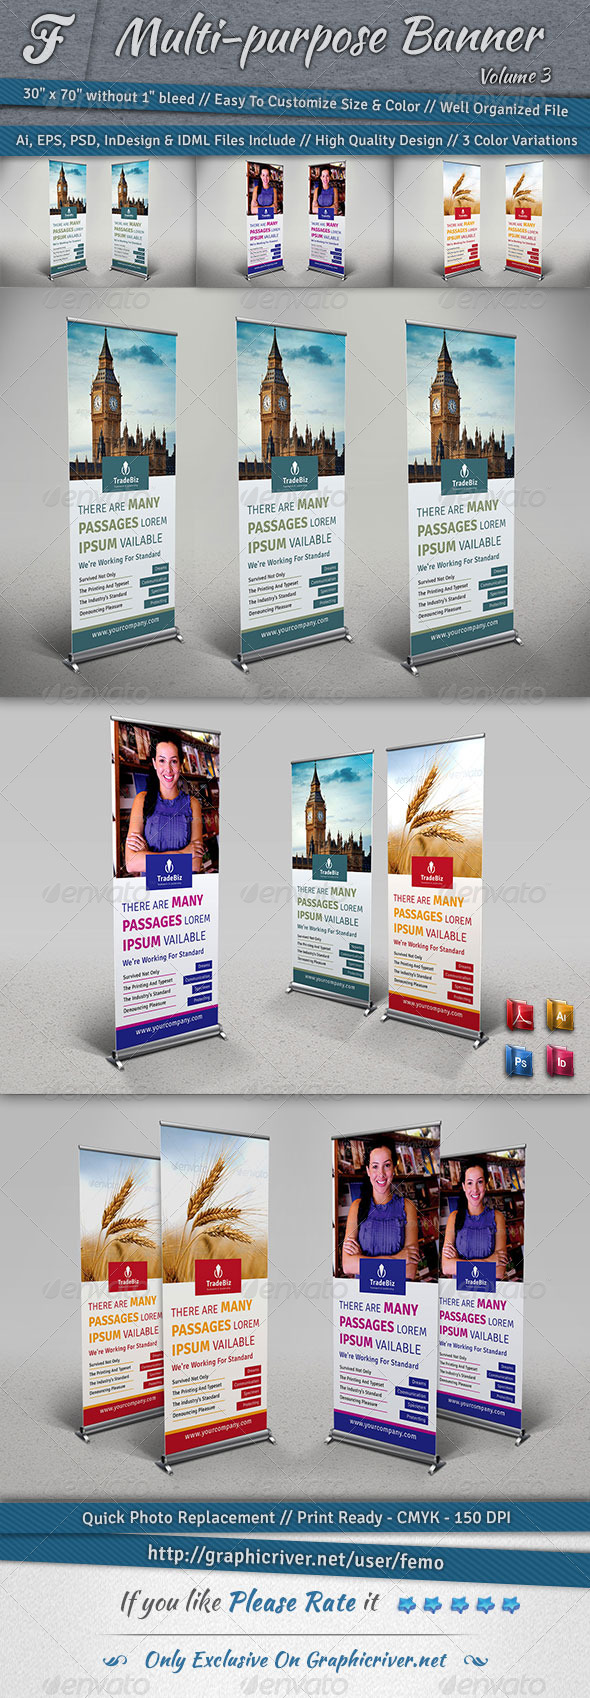 GraphicRiver Multi-purpose Banner Volume 3 7098003